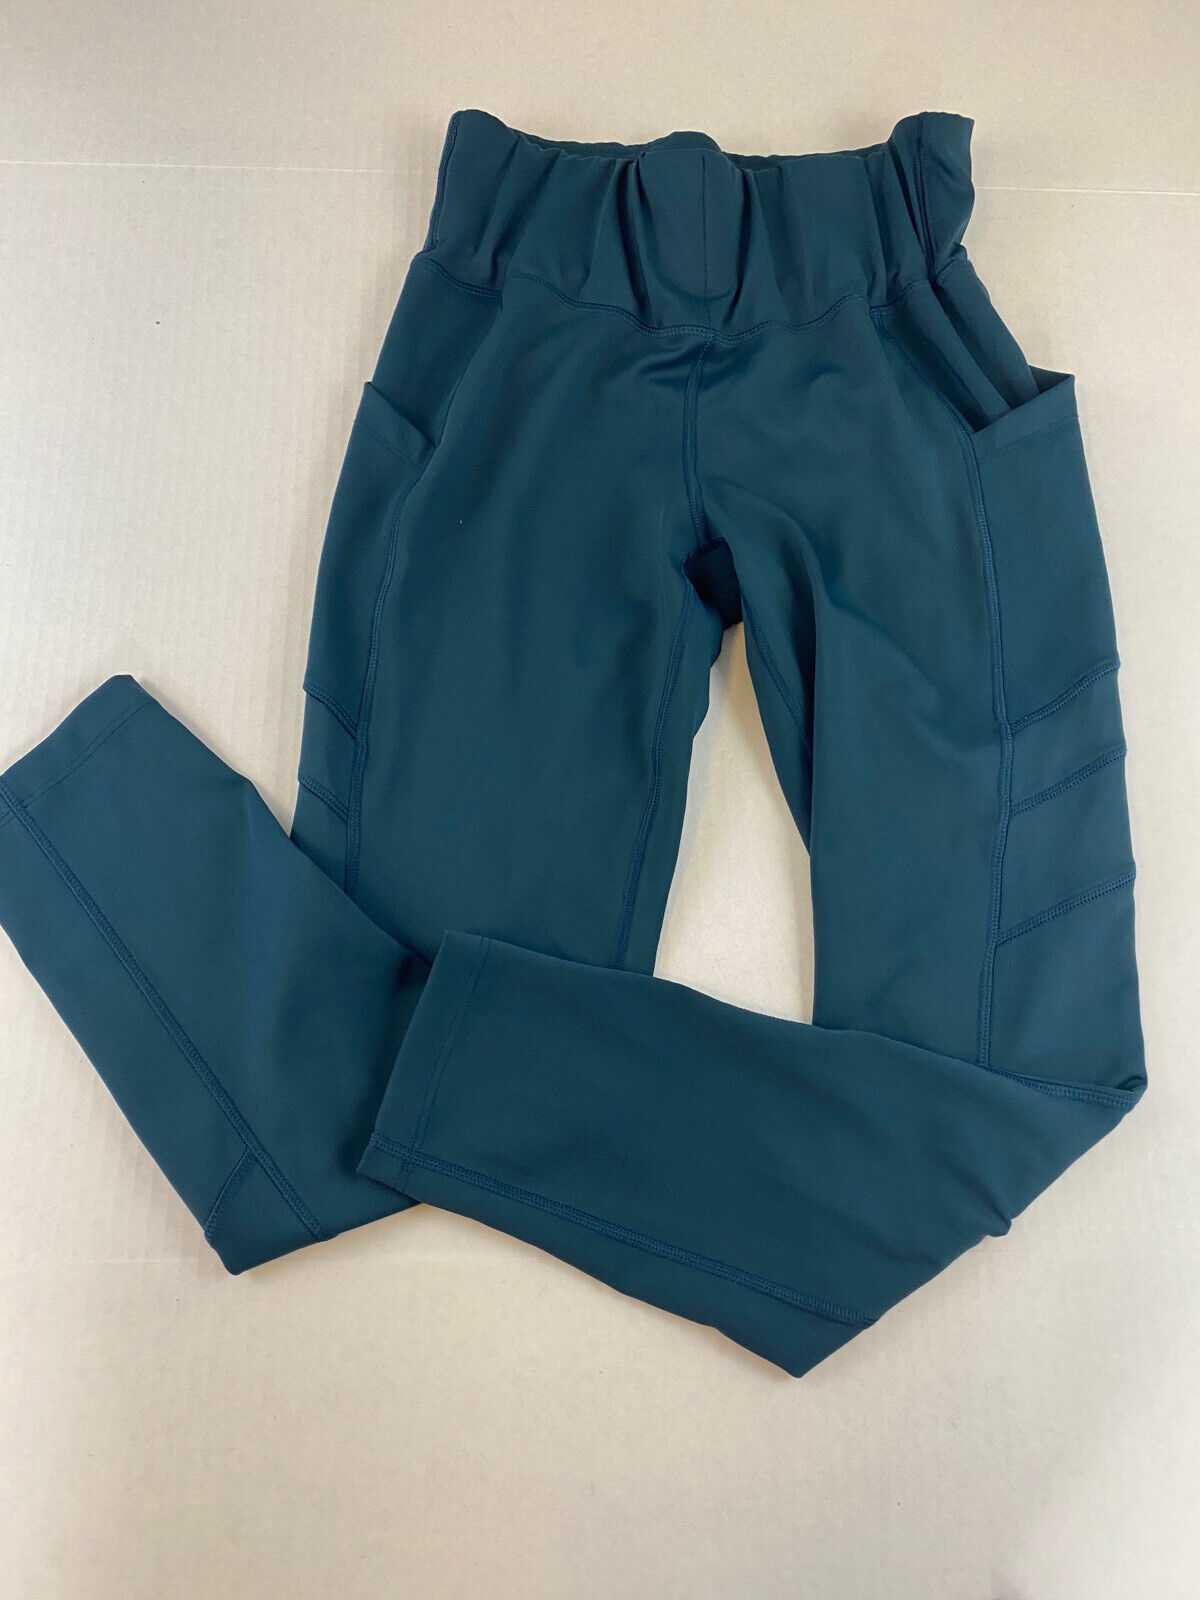 New Balance Women High Rise Teal Athletic Leggings Thick Band Waist S/M